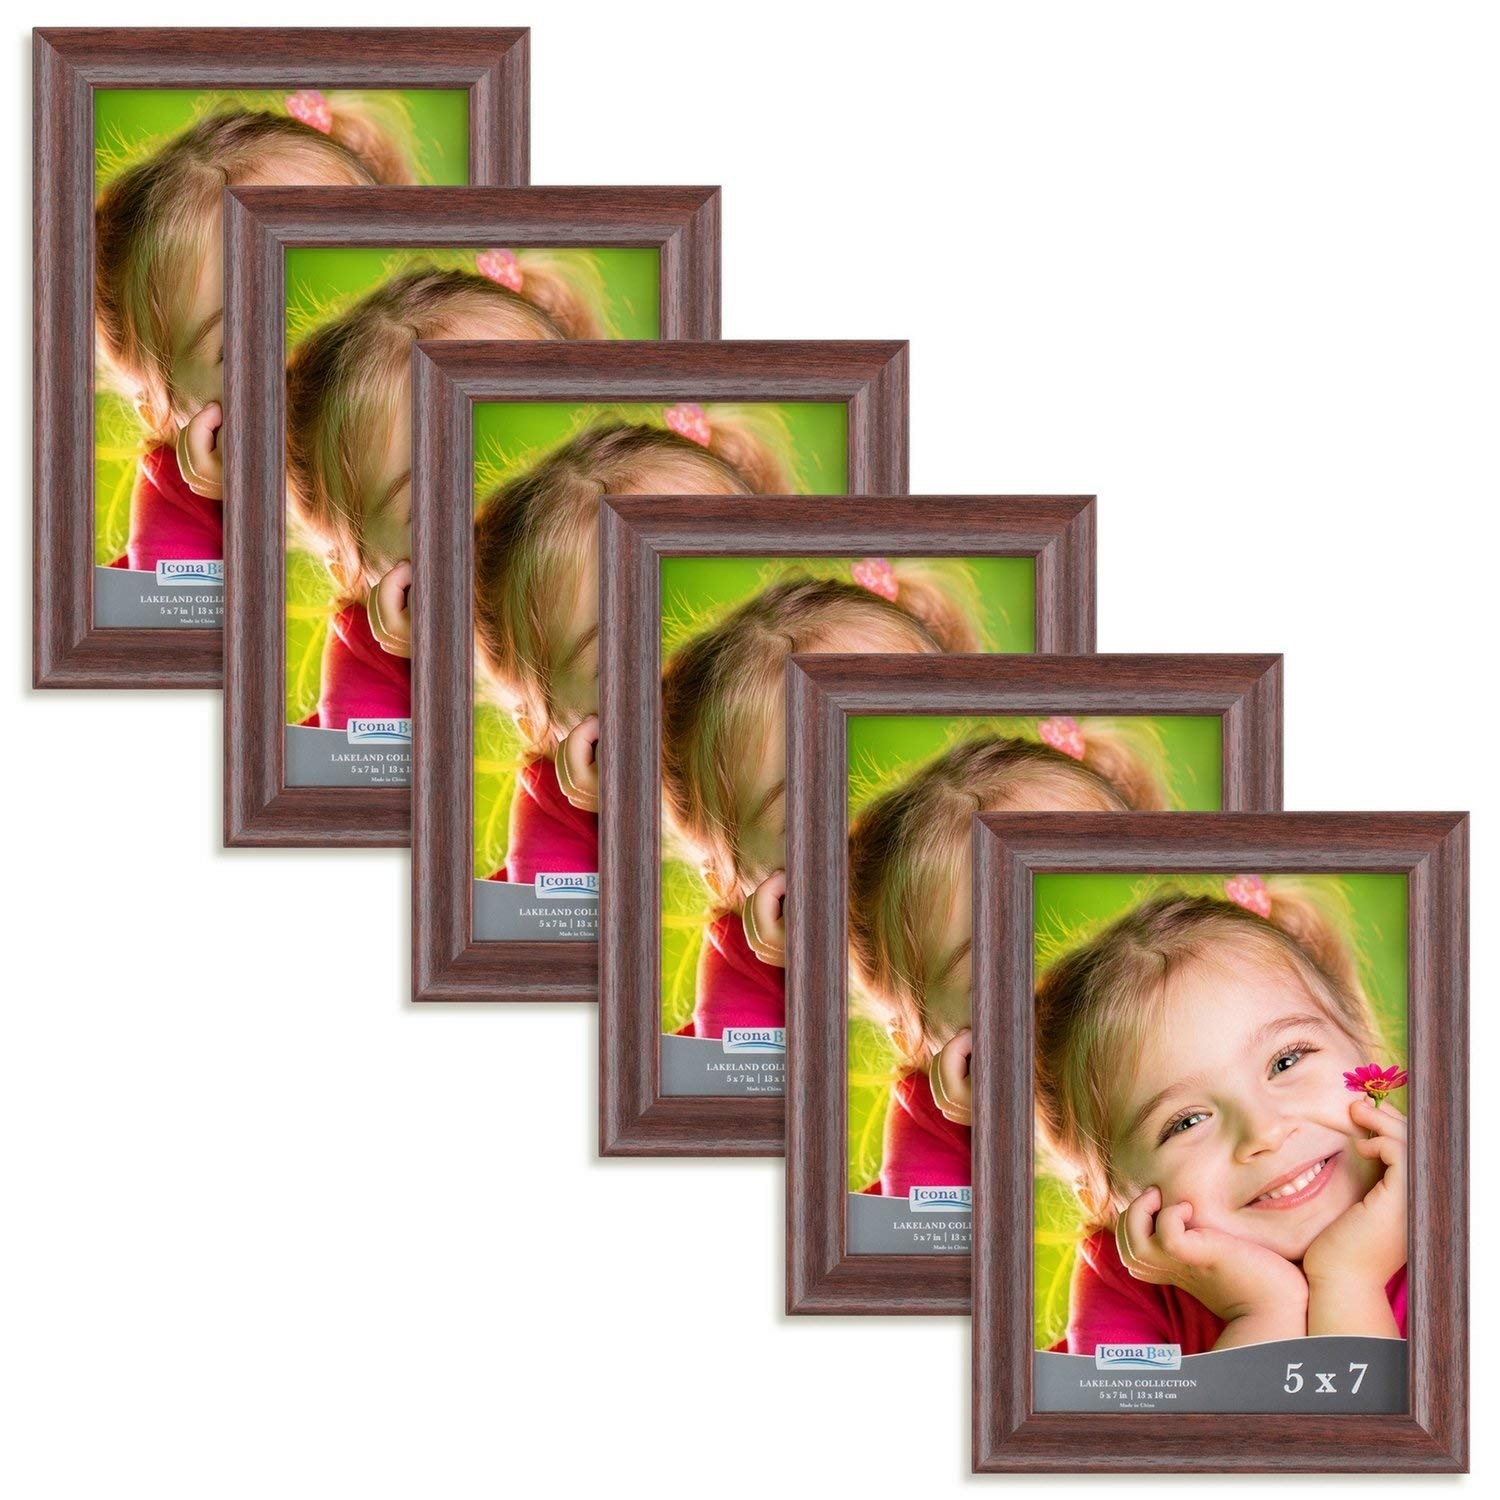 Cheap Red Photo Frames 5x7 Find Red Photo Frames 5x7 Deals On Line